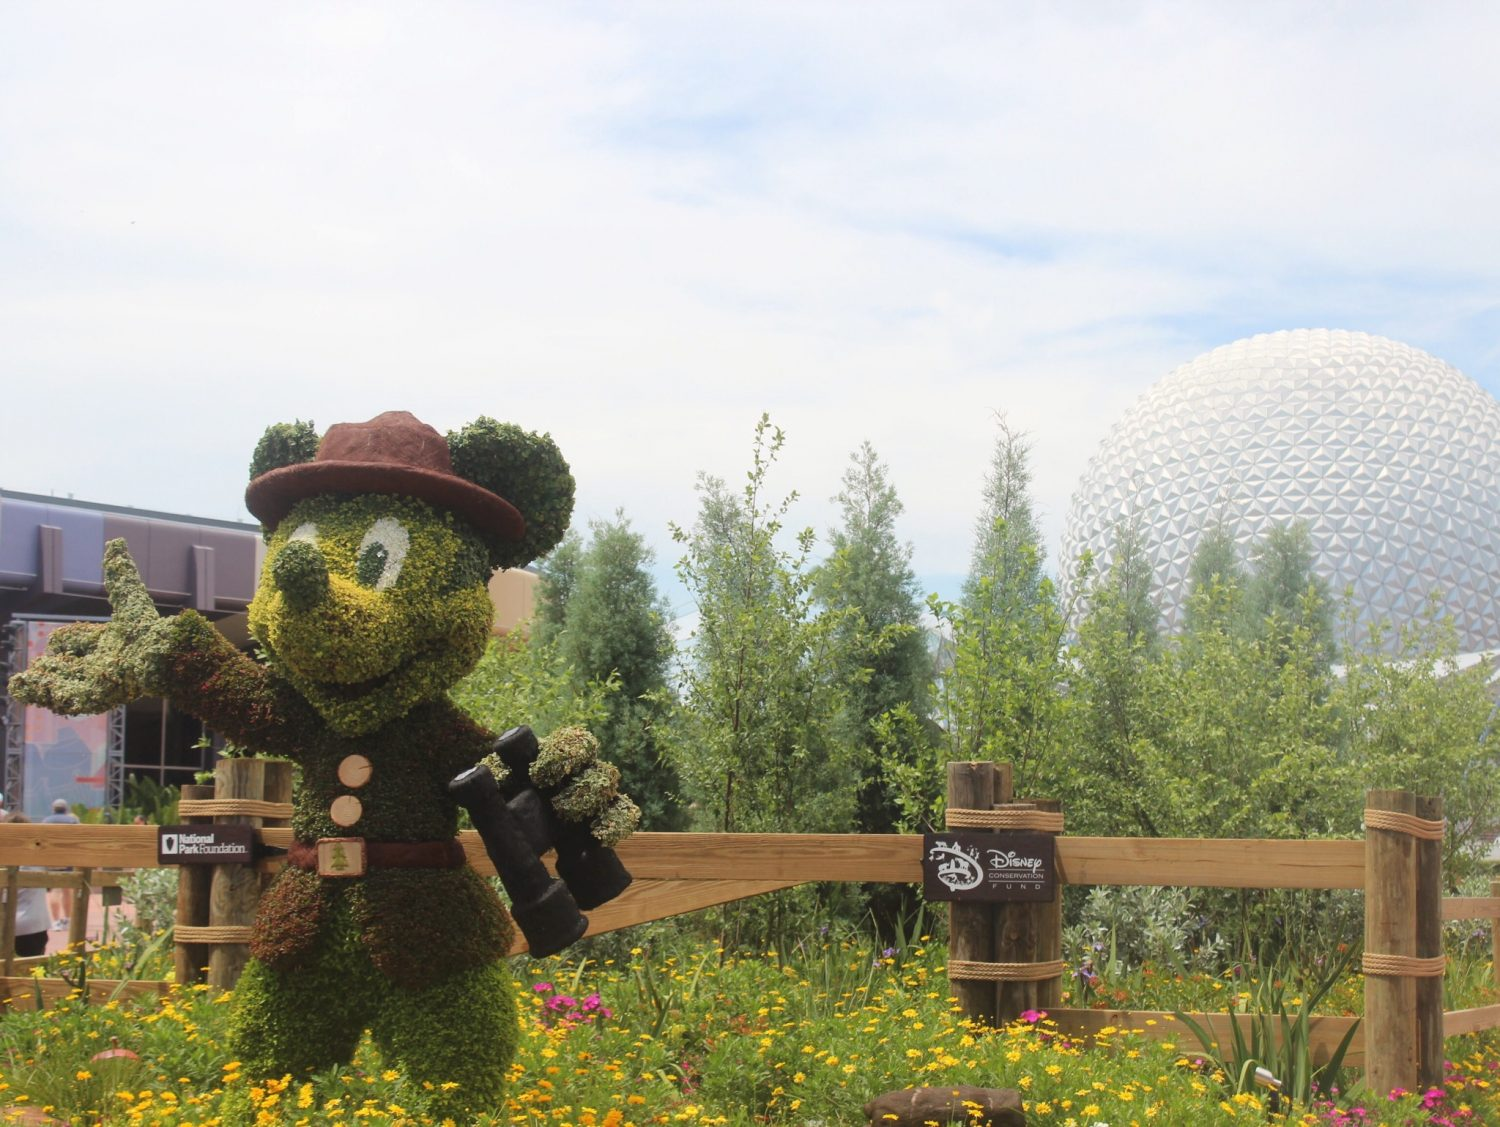 Epcot International Flower and Garden Festival Mickey